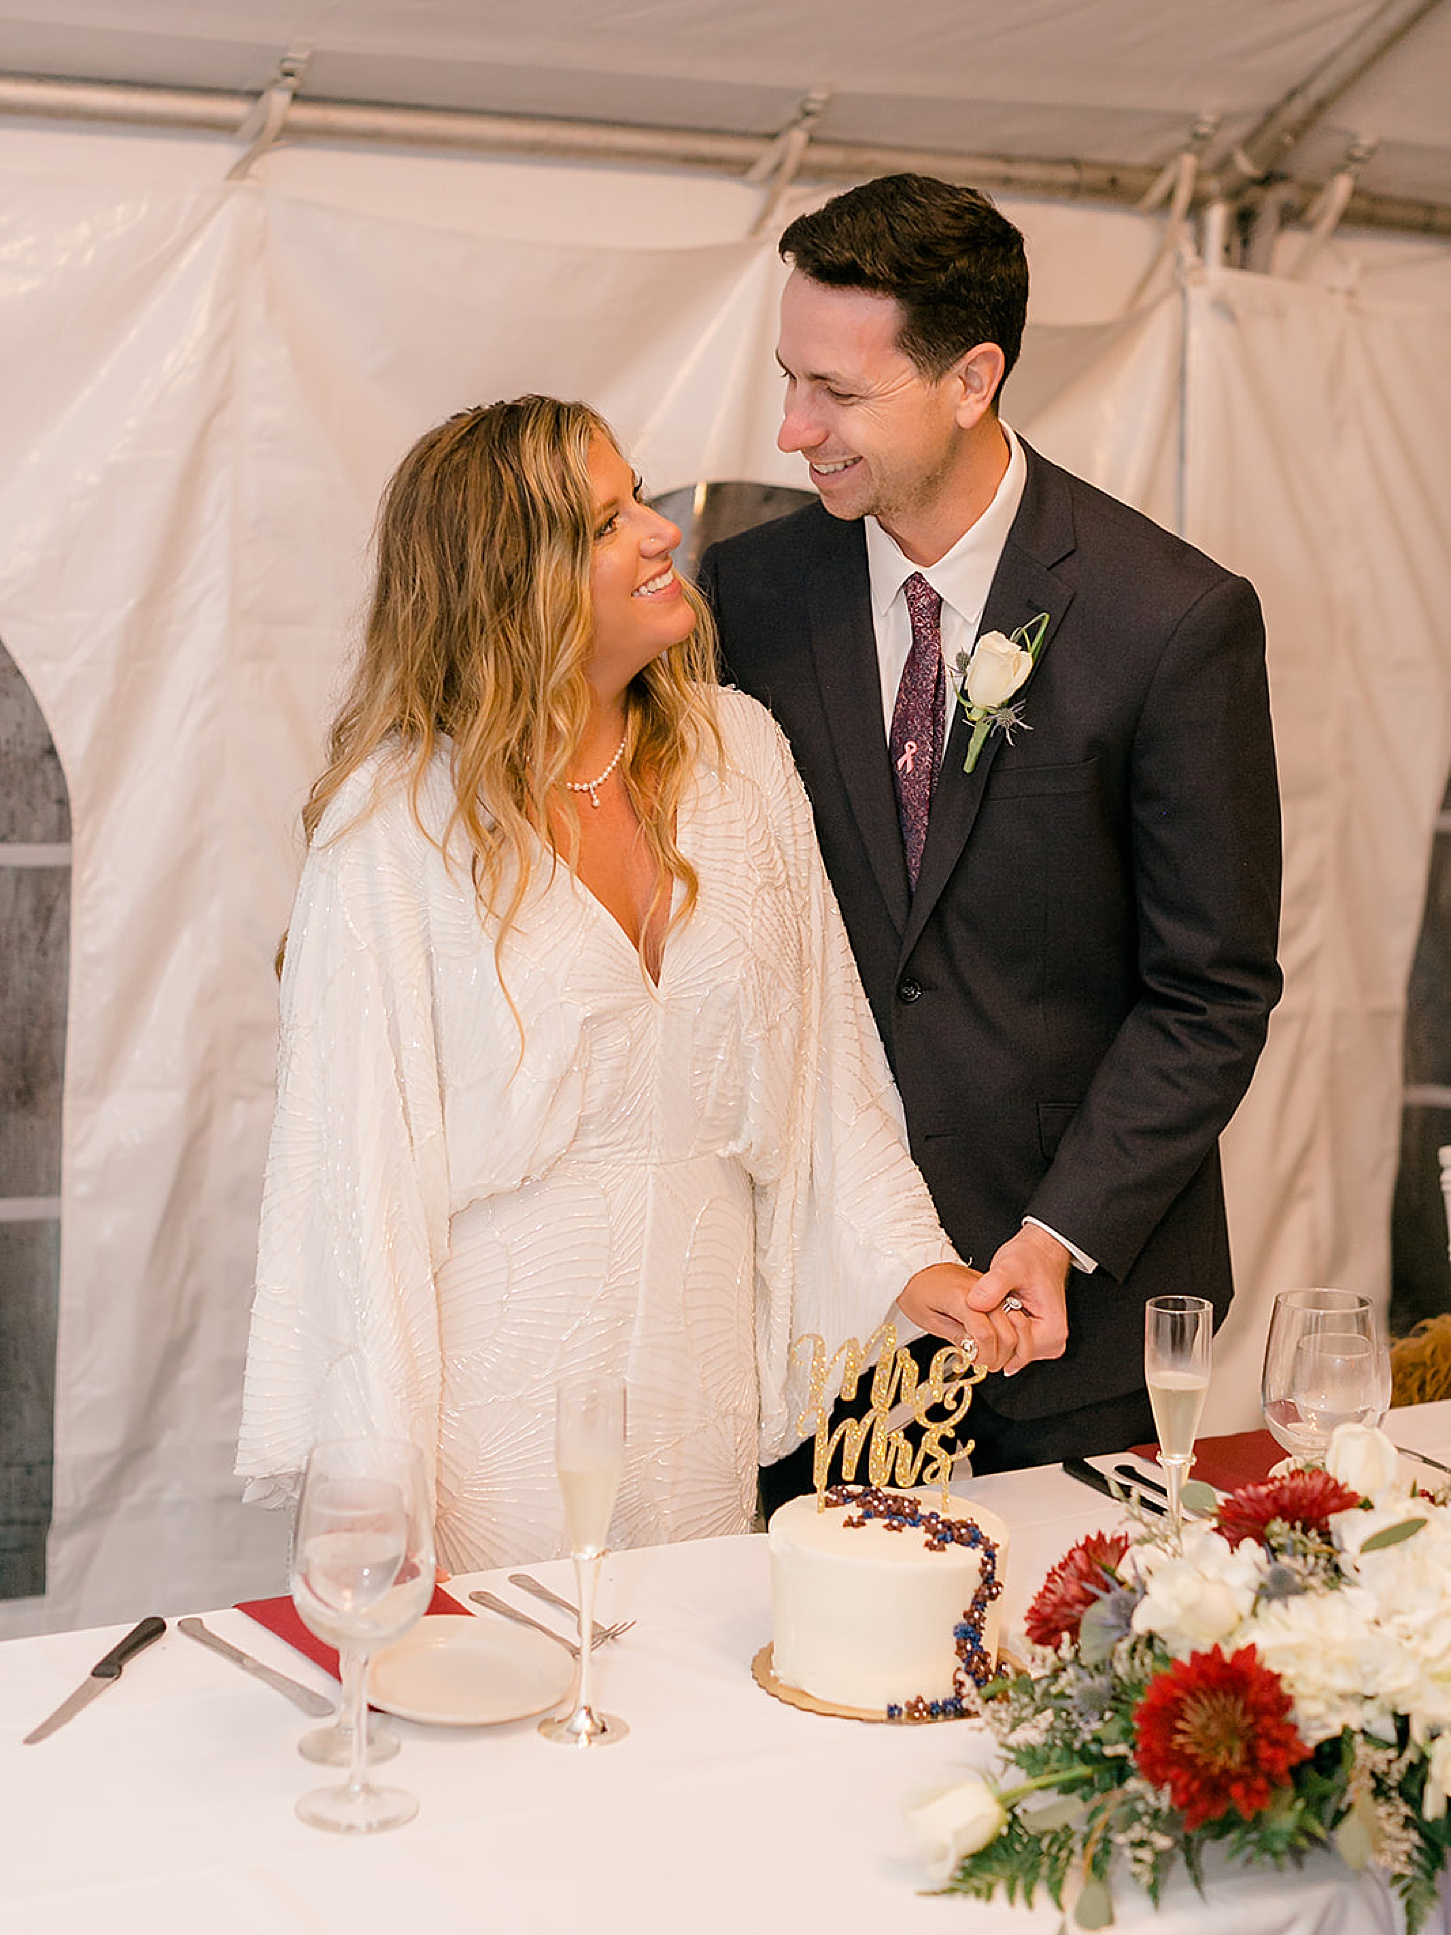 Cape May Intimate Wedding Photography by Magdalena Studios 0026